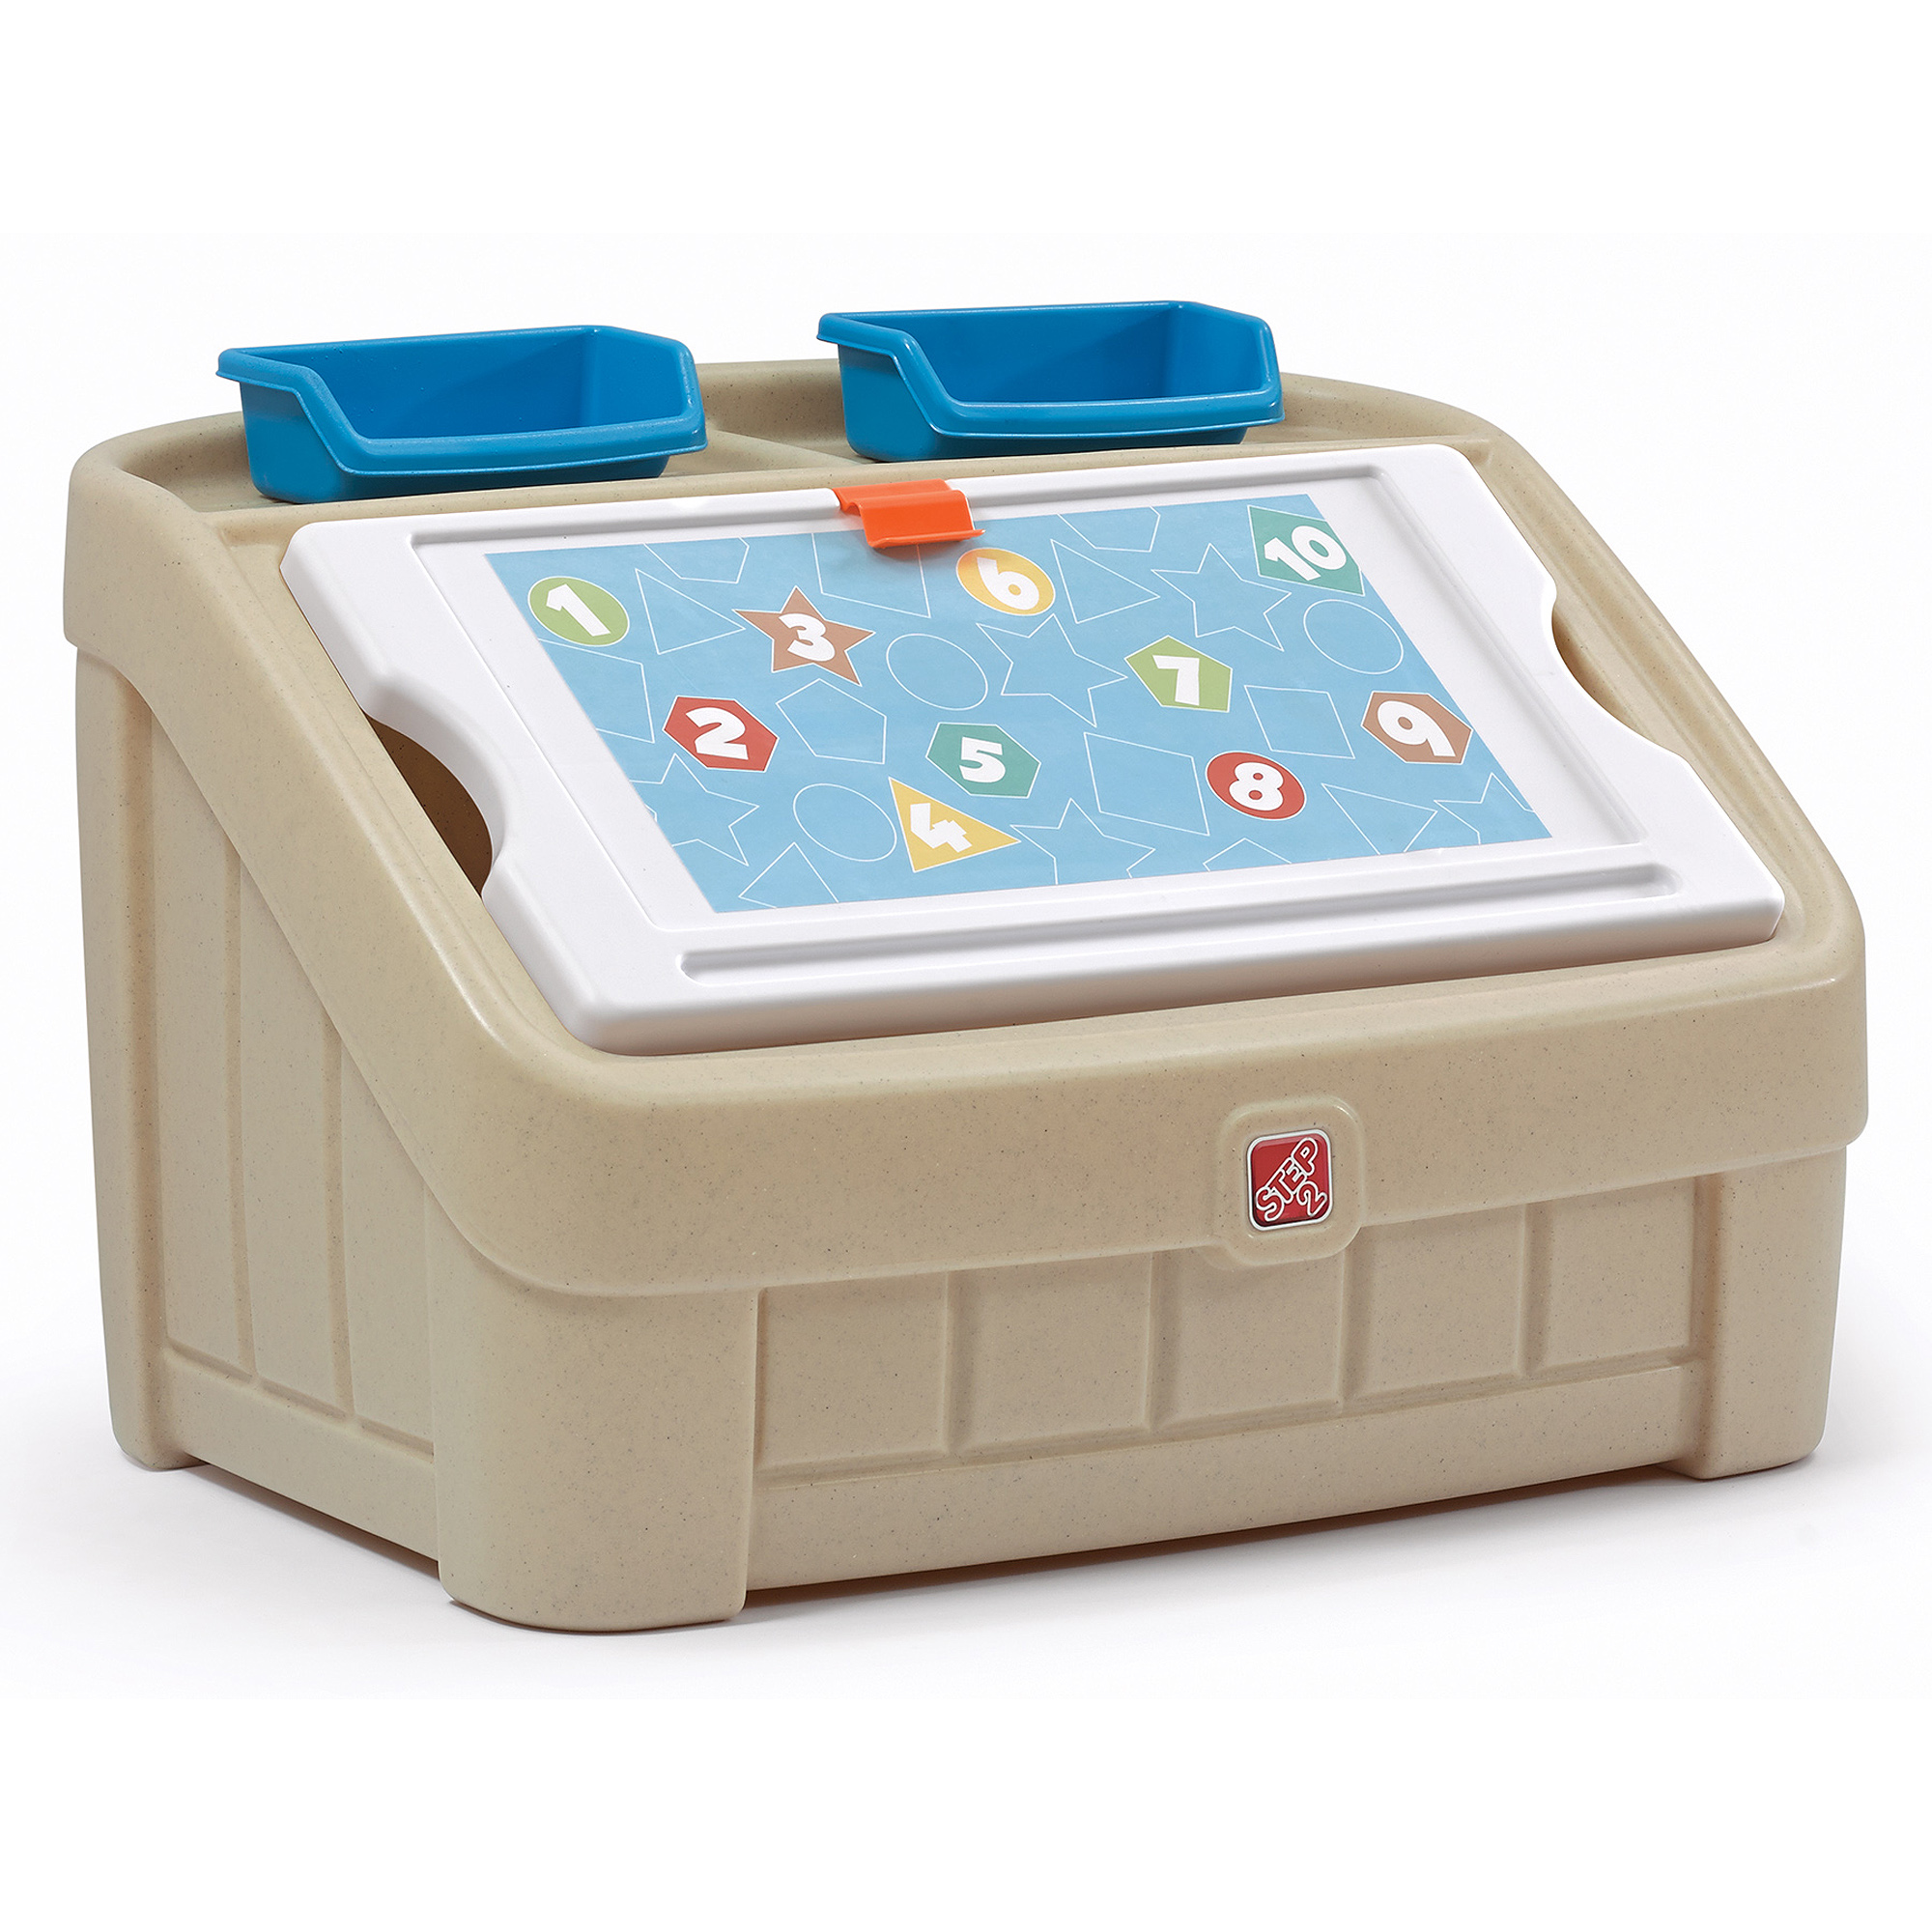 Step2 2-in-1 Art Toy Box